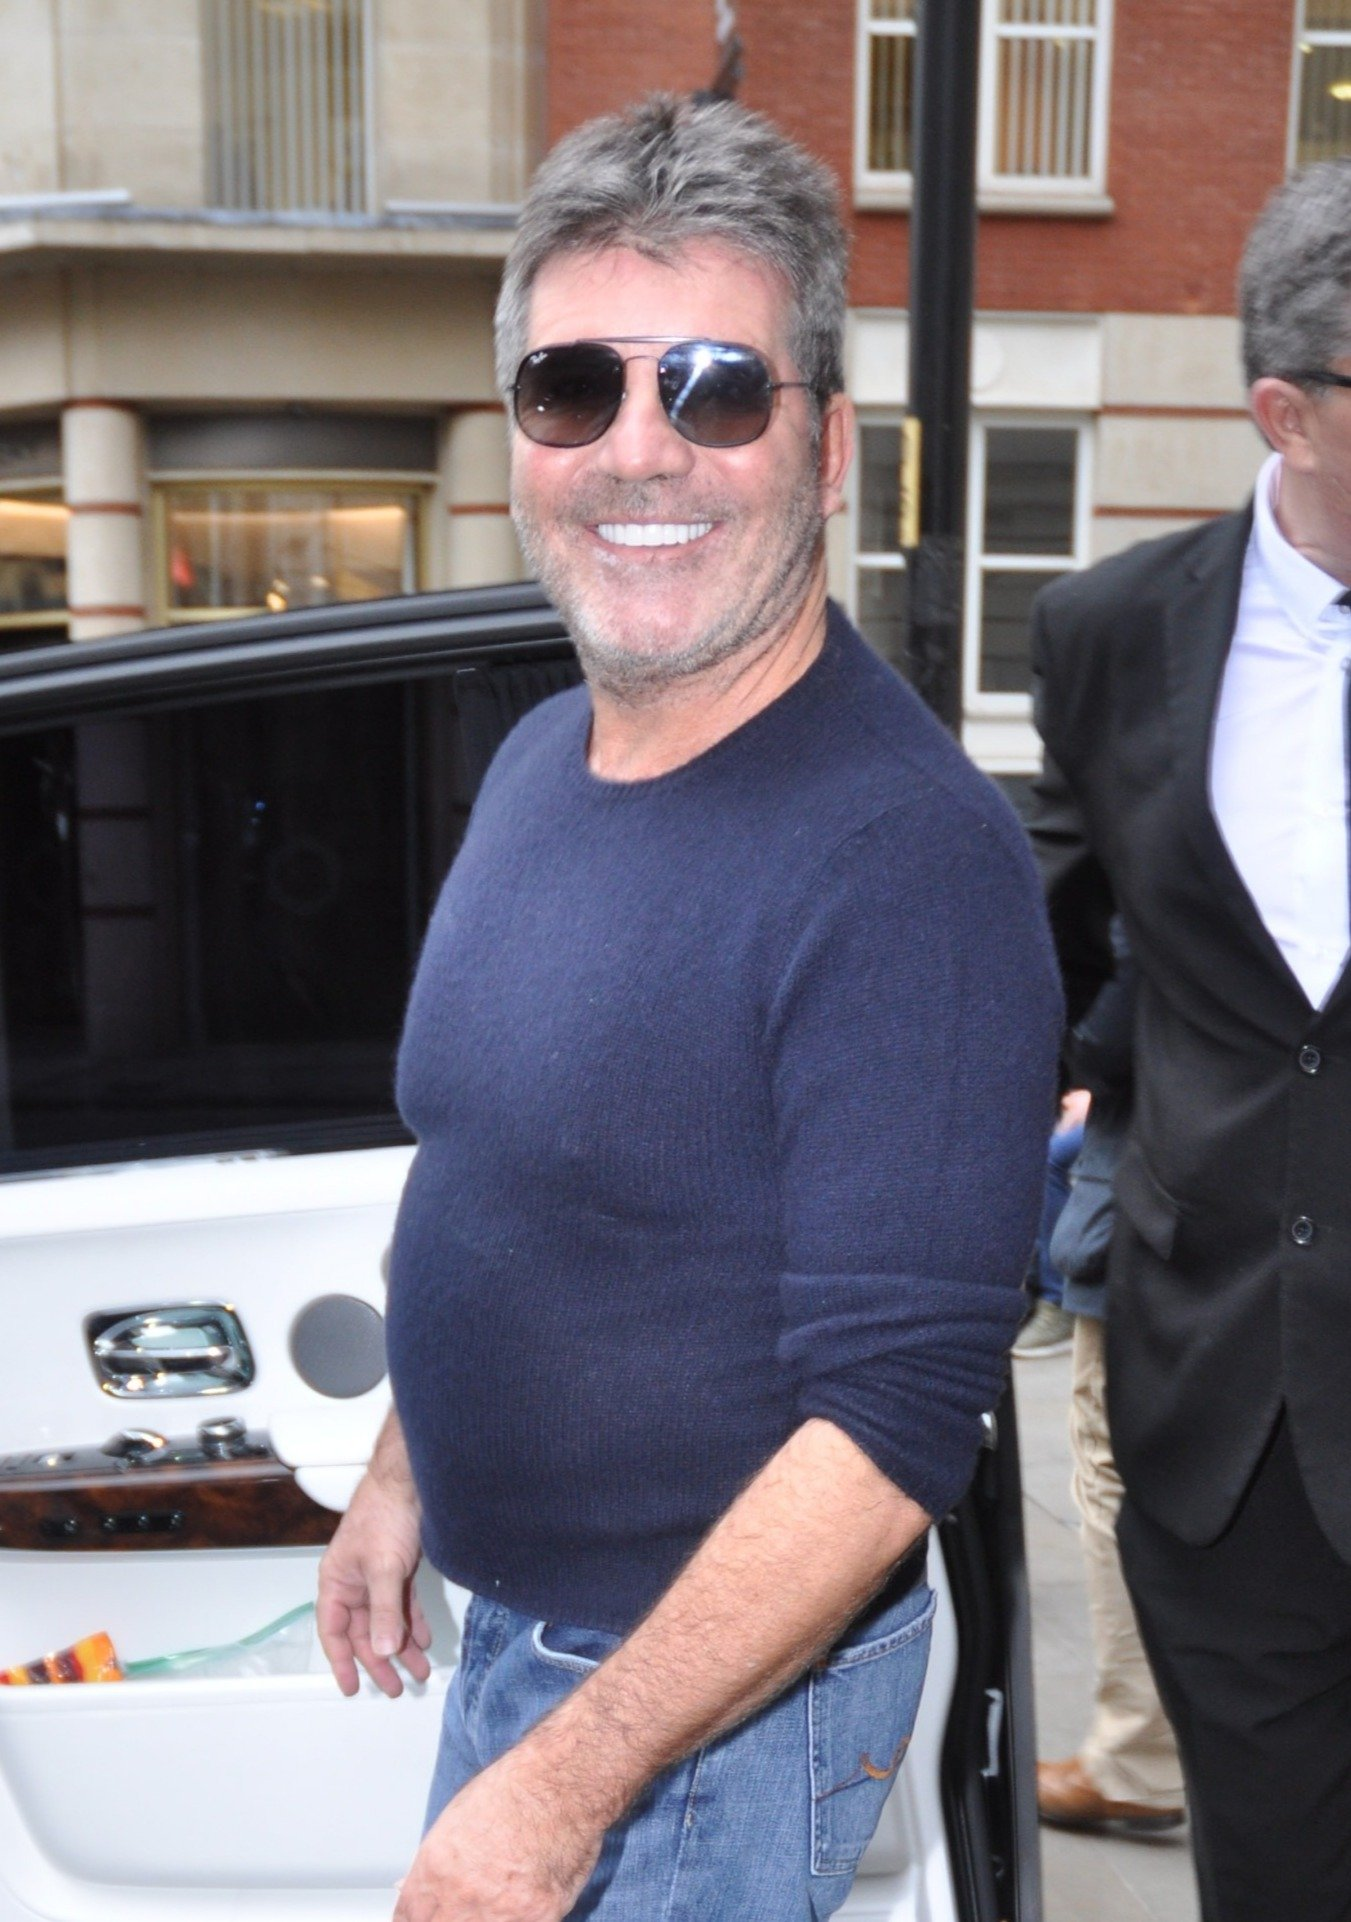 Simon Cowell Leaving Hotel Gotham Manchester